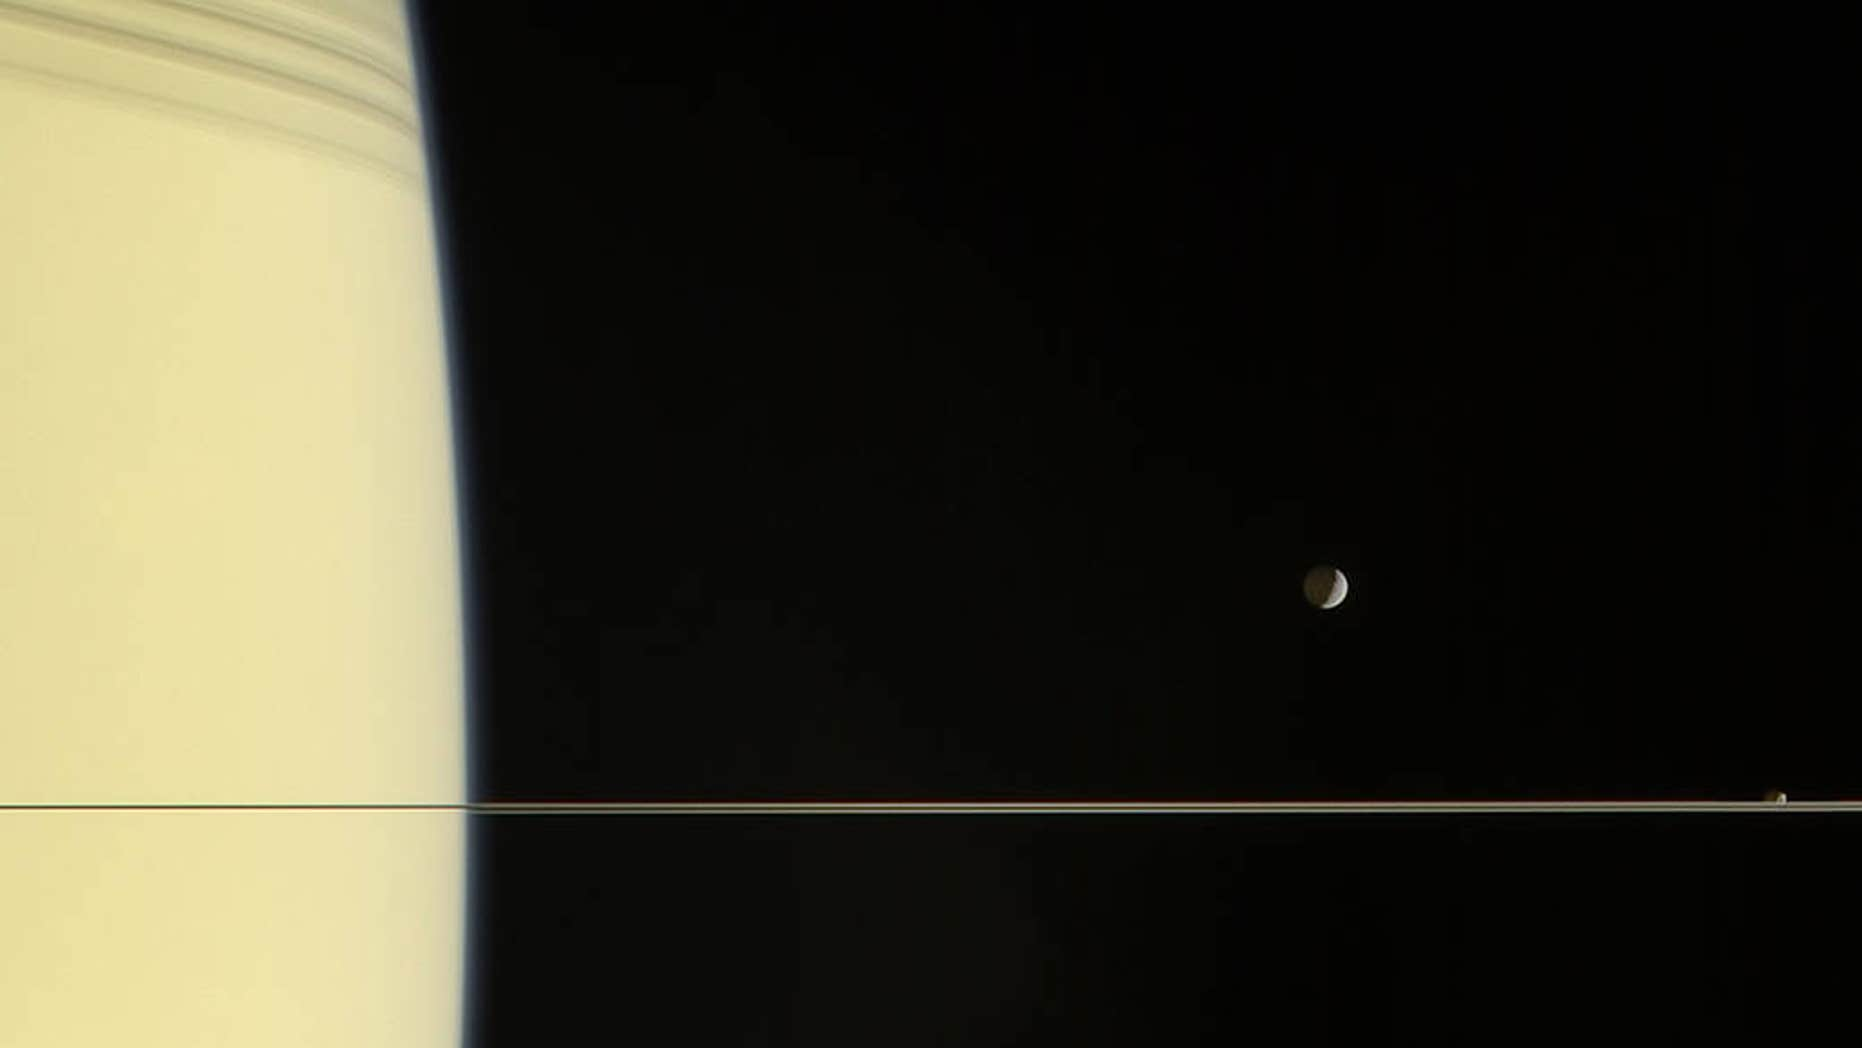 NASA's Cassini spacecraft captured this image of Saturn, its rings and the moons Mimas, Janus and Tethys on March 13, 2006. Tethys is below the ring plane, Mimas is above it and tiny Janus appears to sit right on the rings in this view.